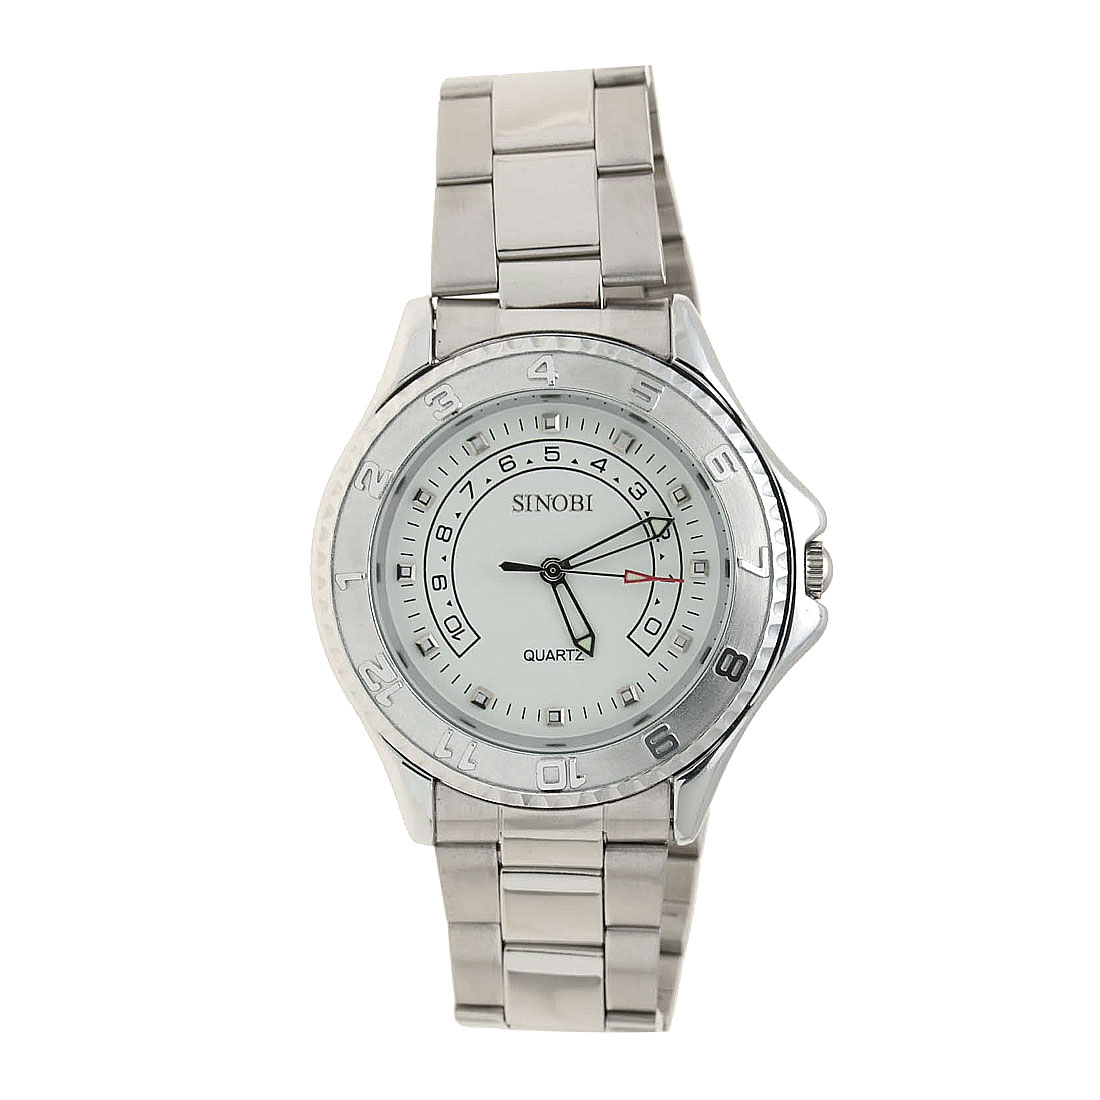 Fashion Metal Band Man's Quartz Wrist Watch White Dial